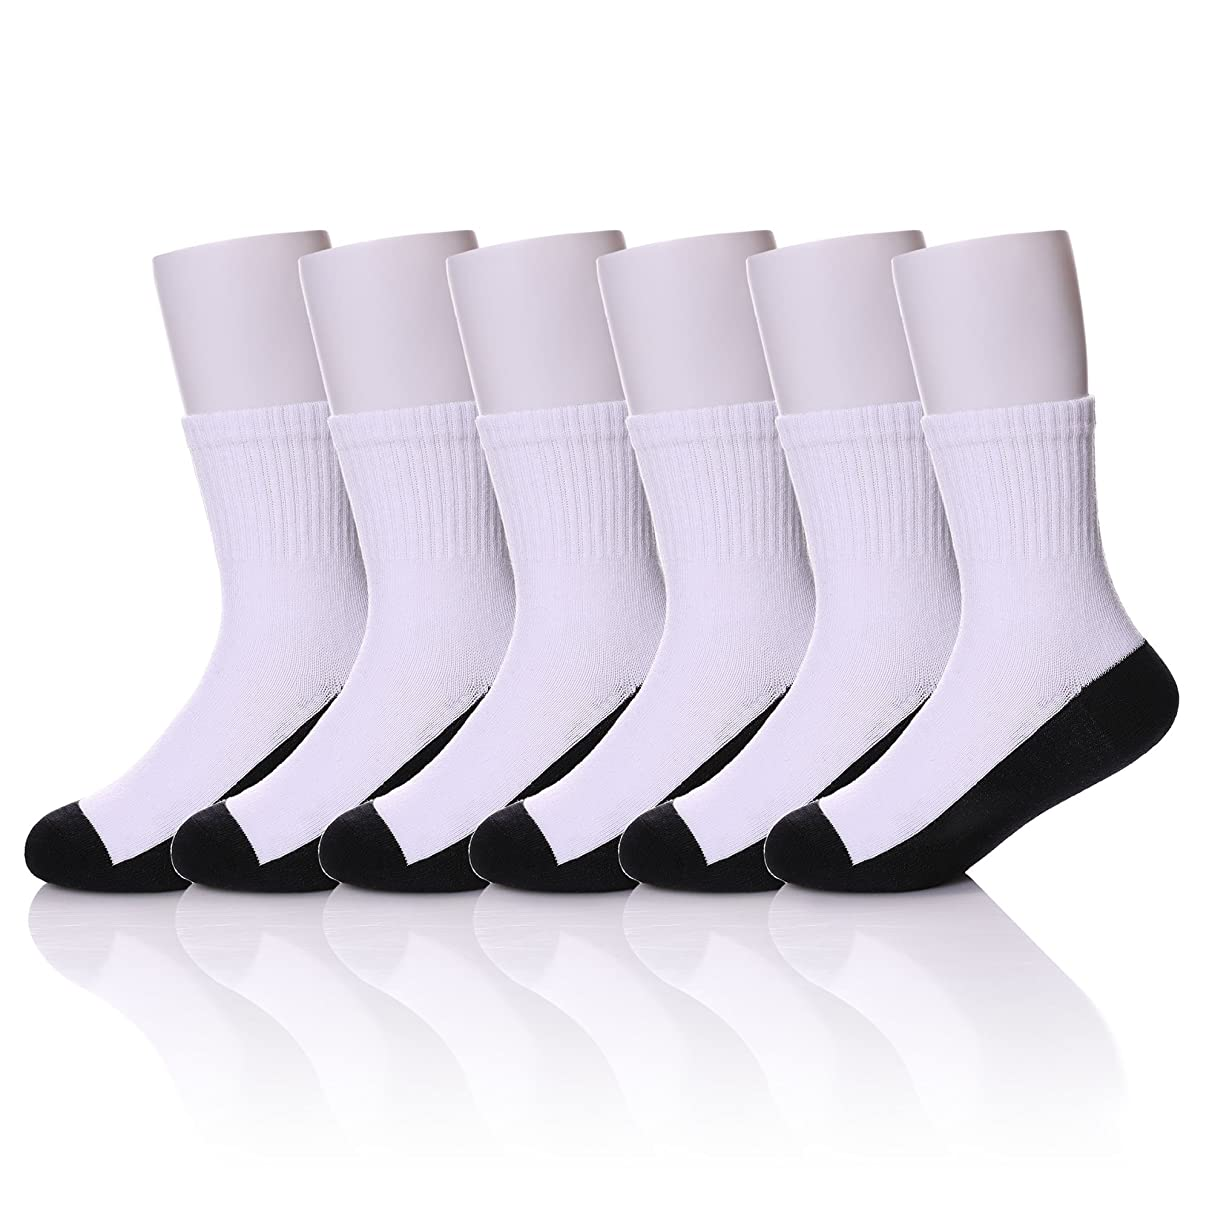 MIUBEAR 6 Pack Unisex Toddler Big Boys Girls Athletic Ribbed Cotton Classic Crew School Socks 3-16 Years Old